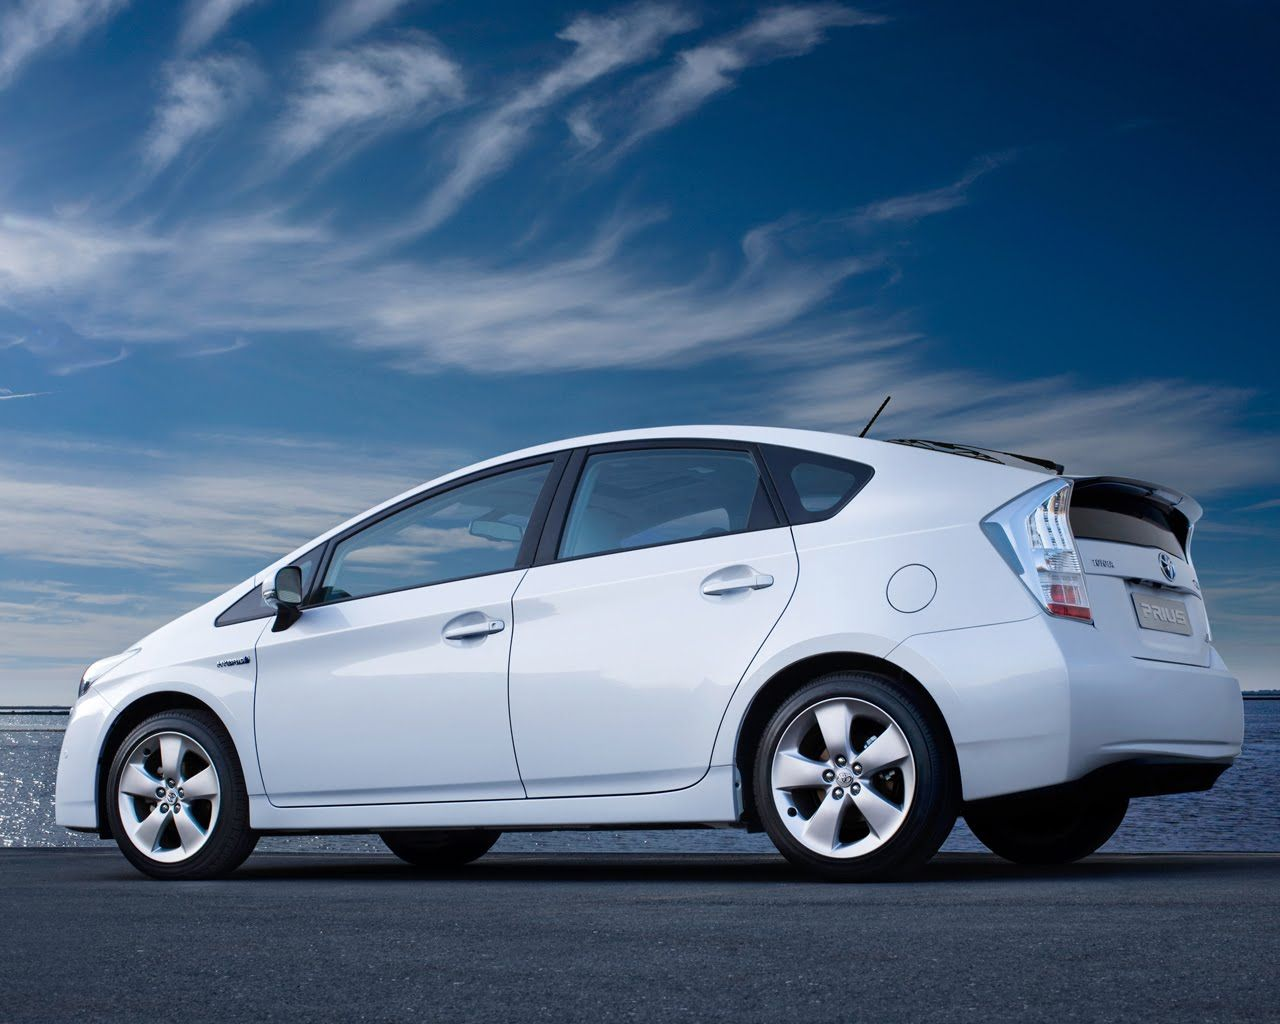 Top 5 Hybrid Cars In 2012 Hybrid Car Toyota Prius Hybrid Car